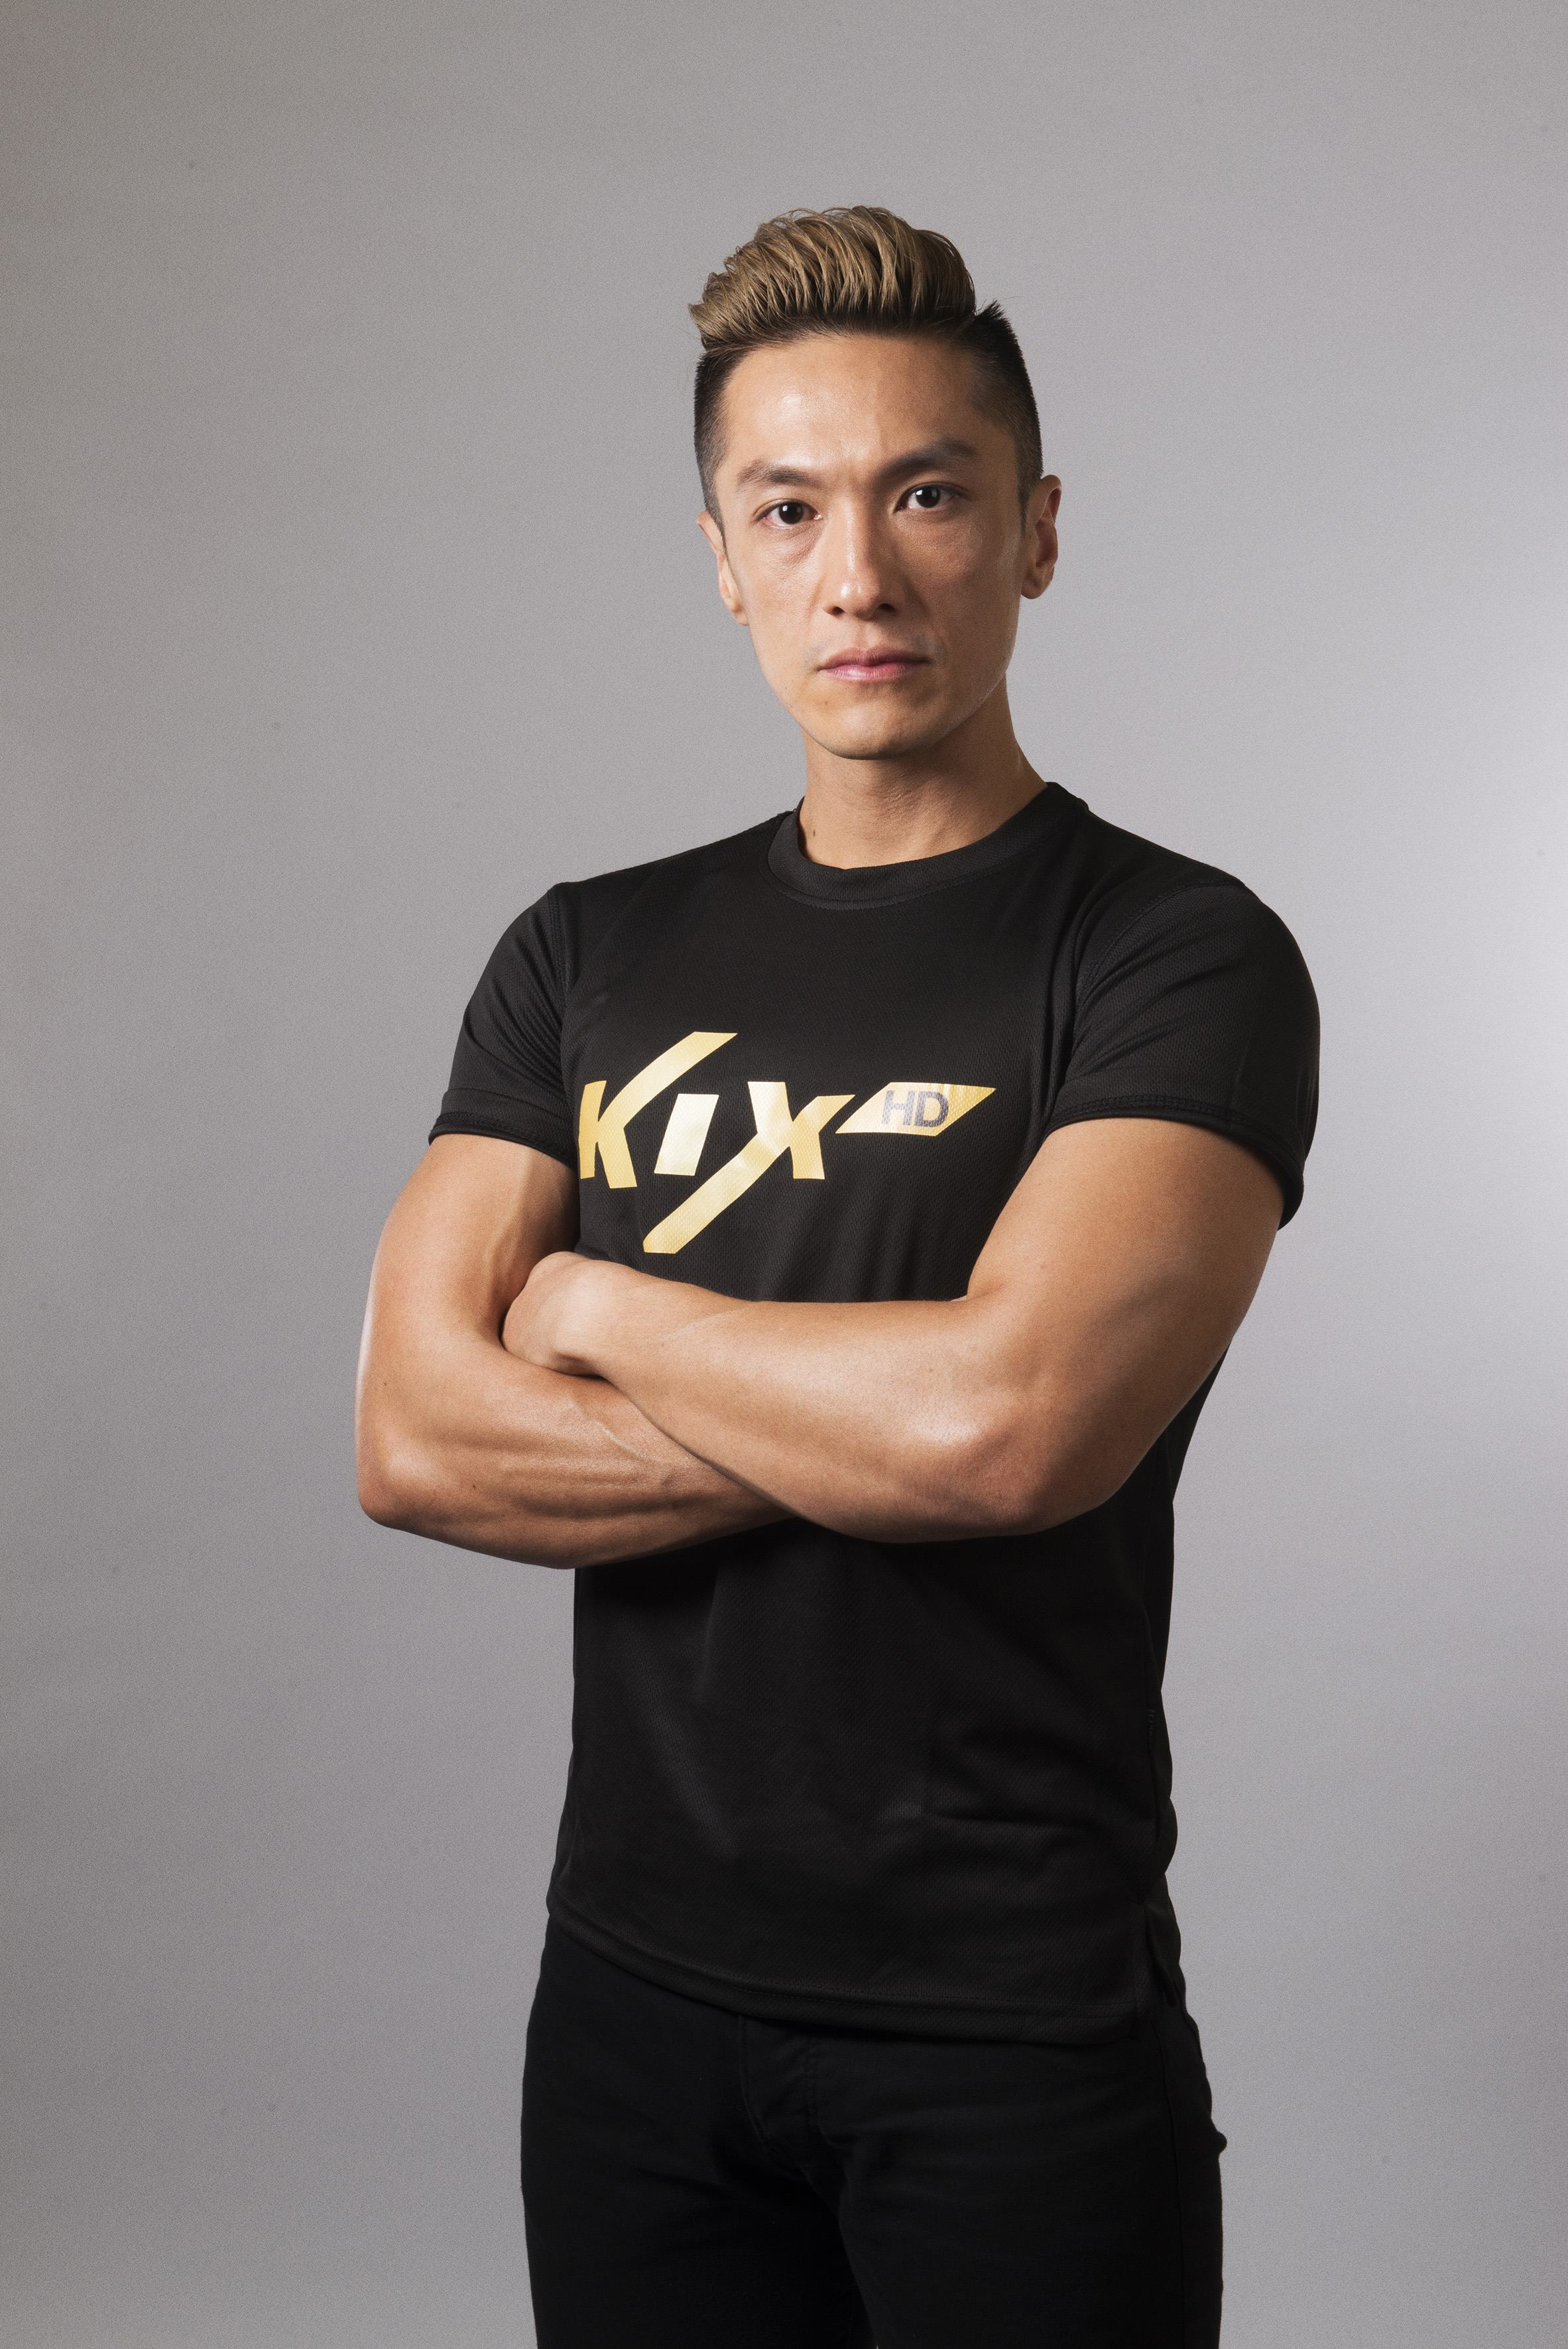 Winner of the 2016 competition, fitness instructor Benny Yeoh will probably push you to do 100 push-ups in a minute.